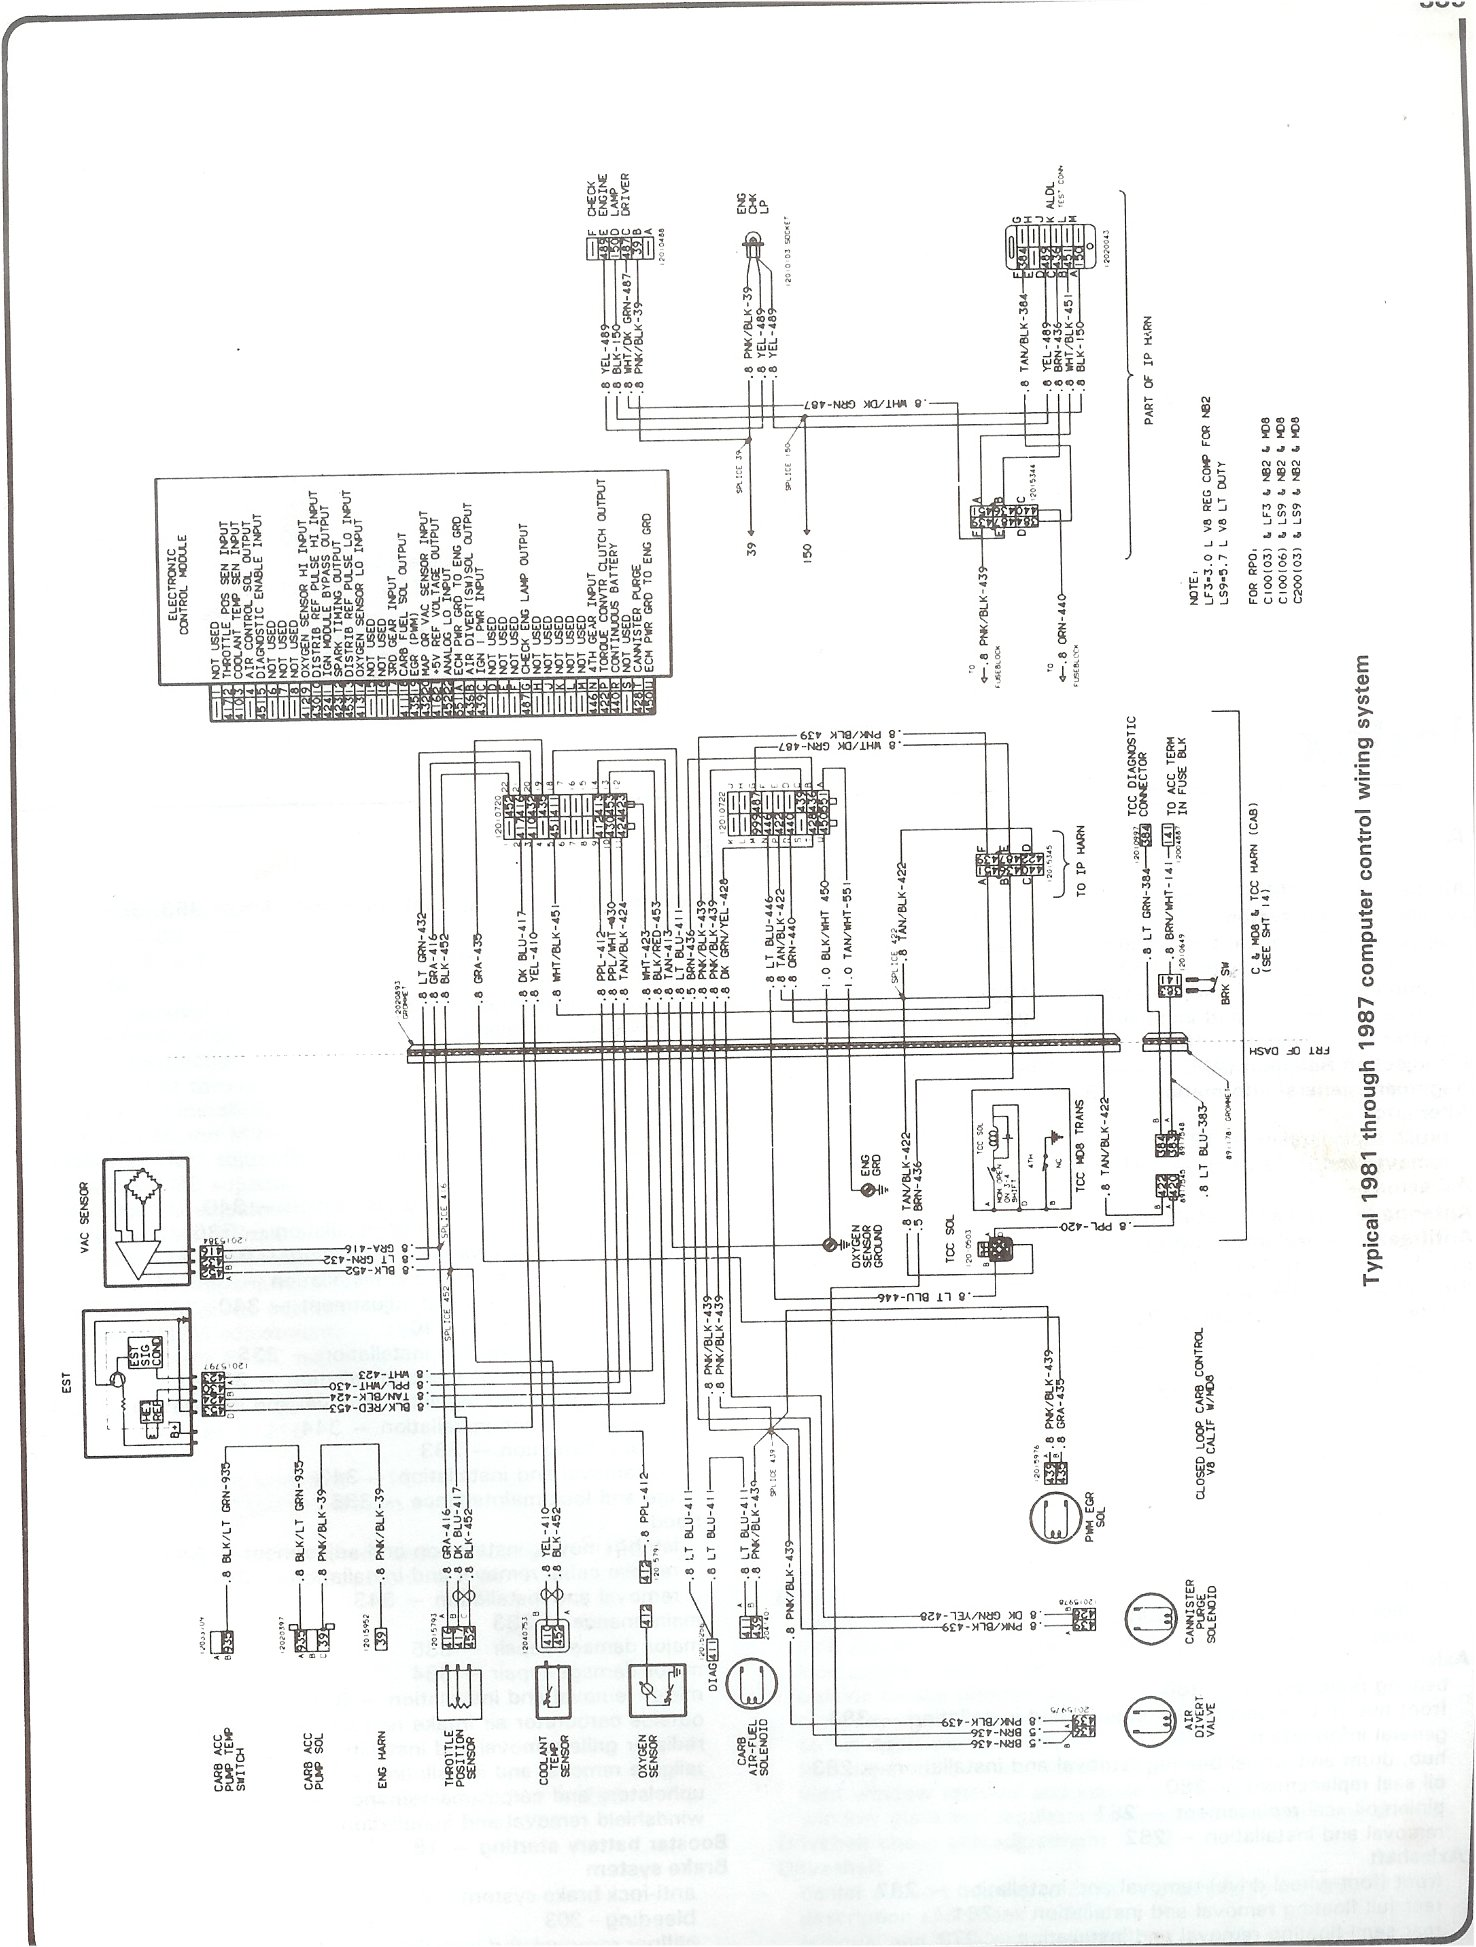 85 chevy truck wiring diagram related keywords suggestions wiring rh 29 fomly be